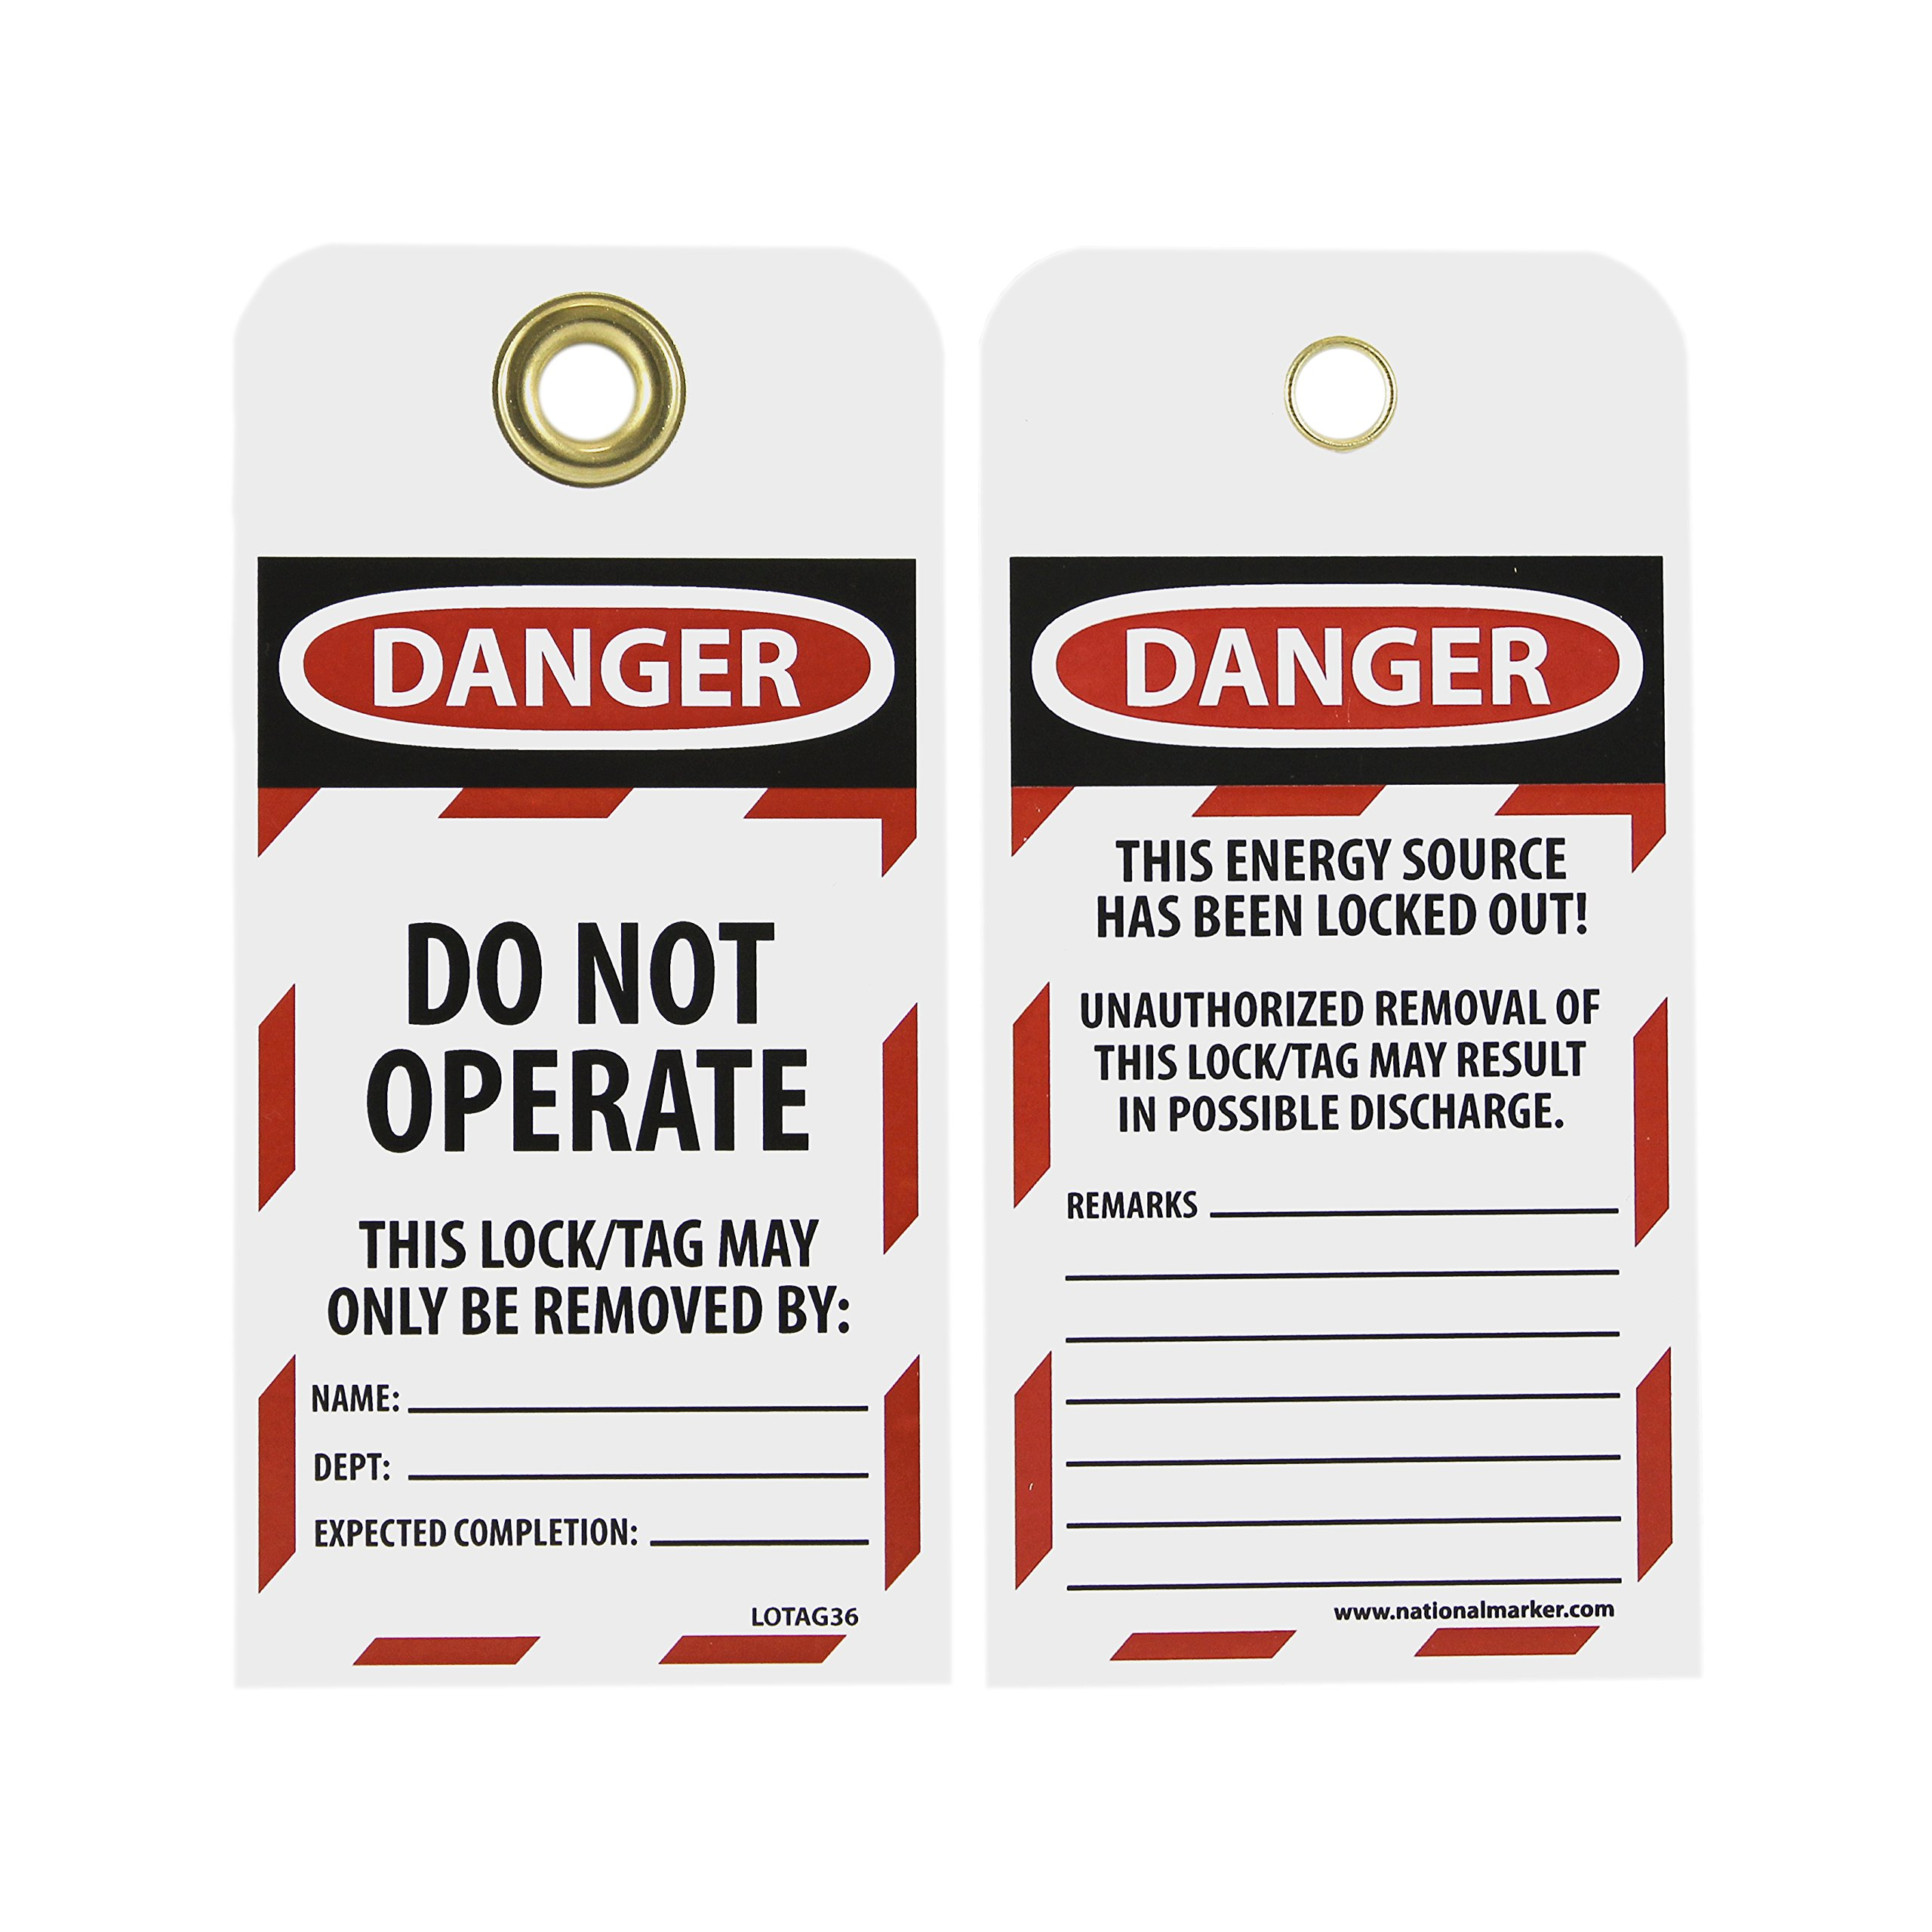 NMC LOTAG36-25 Lockout Tag, ''DANGER - DO NOT OPERATE,'' 6'' Height x 3'' Width, Unrippable Vinyl, Red/Black on White (Pack of 25) by NMC